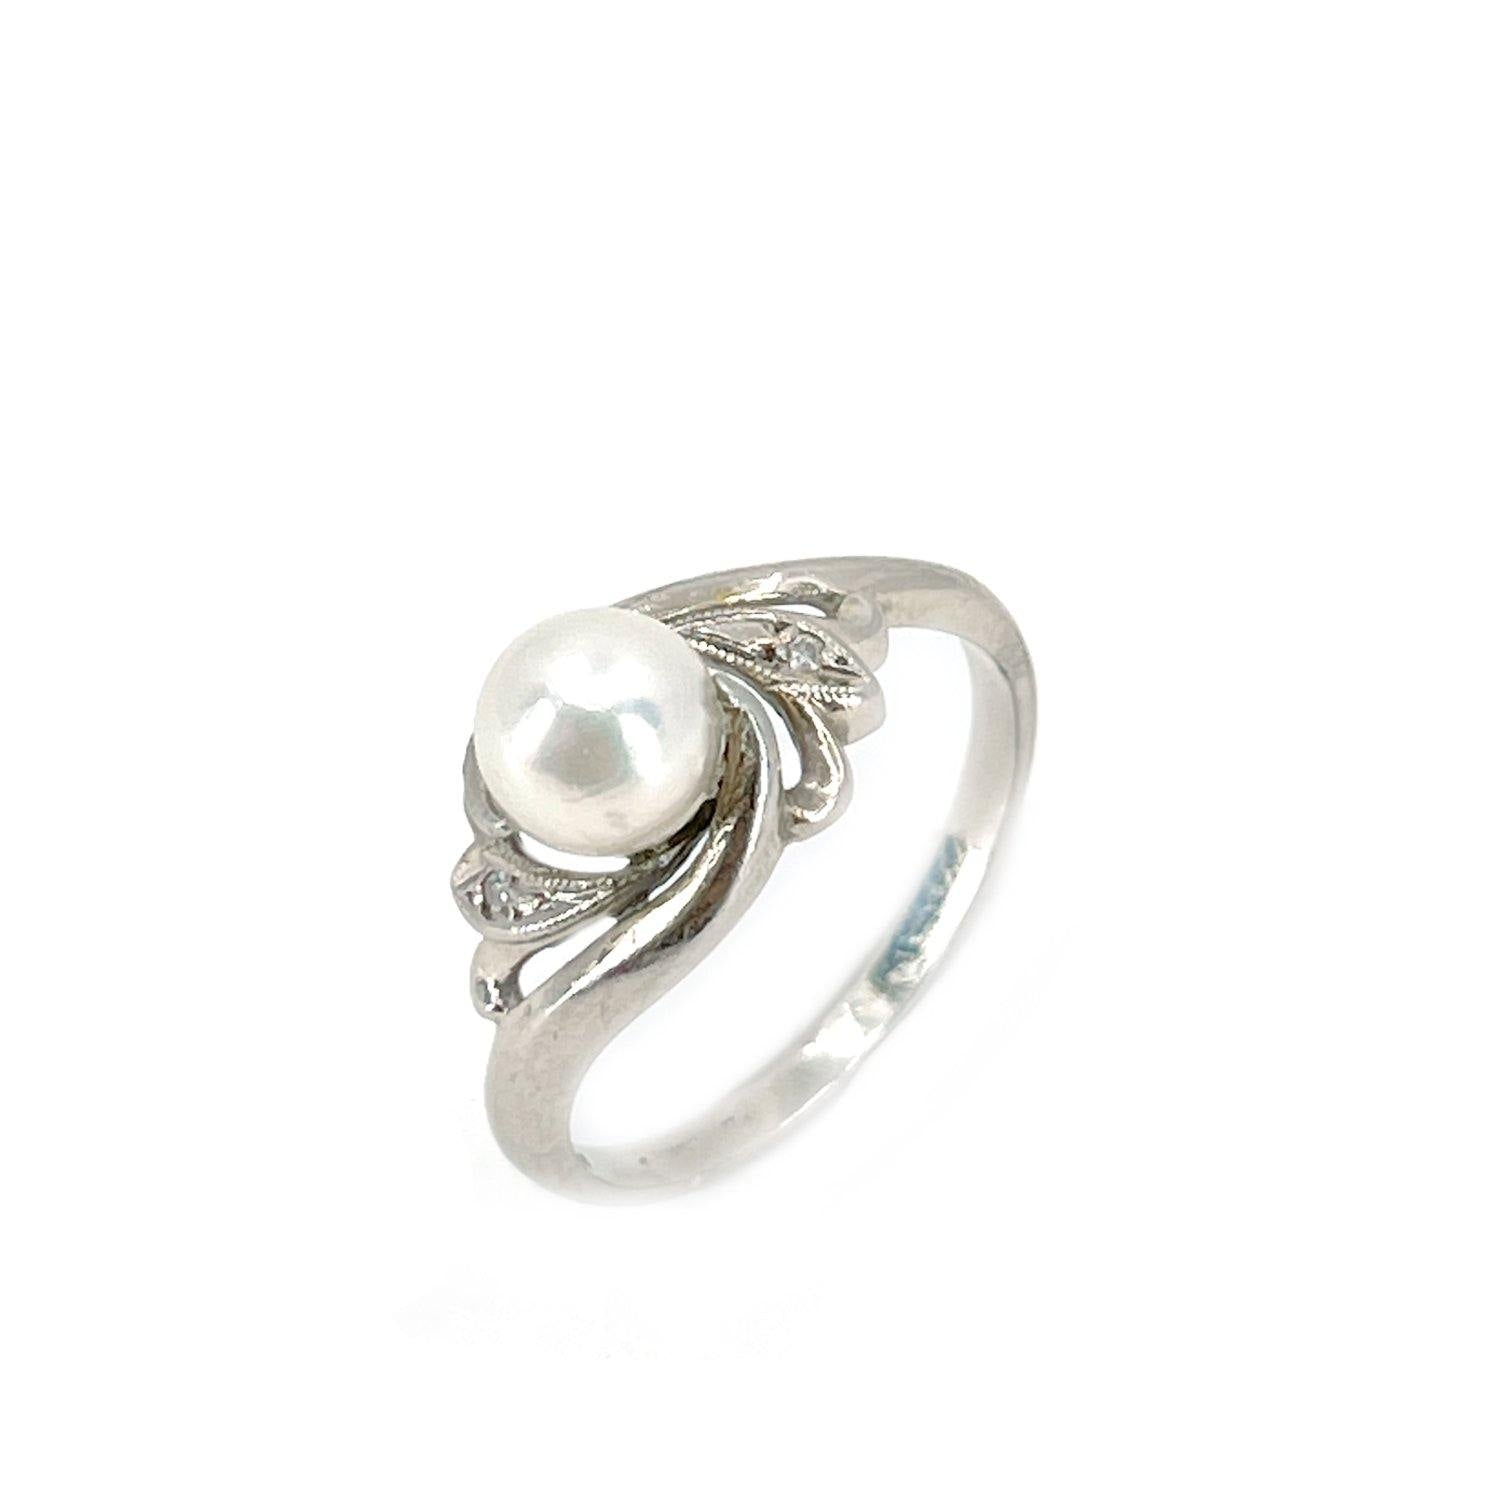 Art Nouveau Japanese Saltwater Akoya Cultured Pearl Diamond Ring- 14K White Gold Size 7 1/2